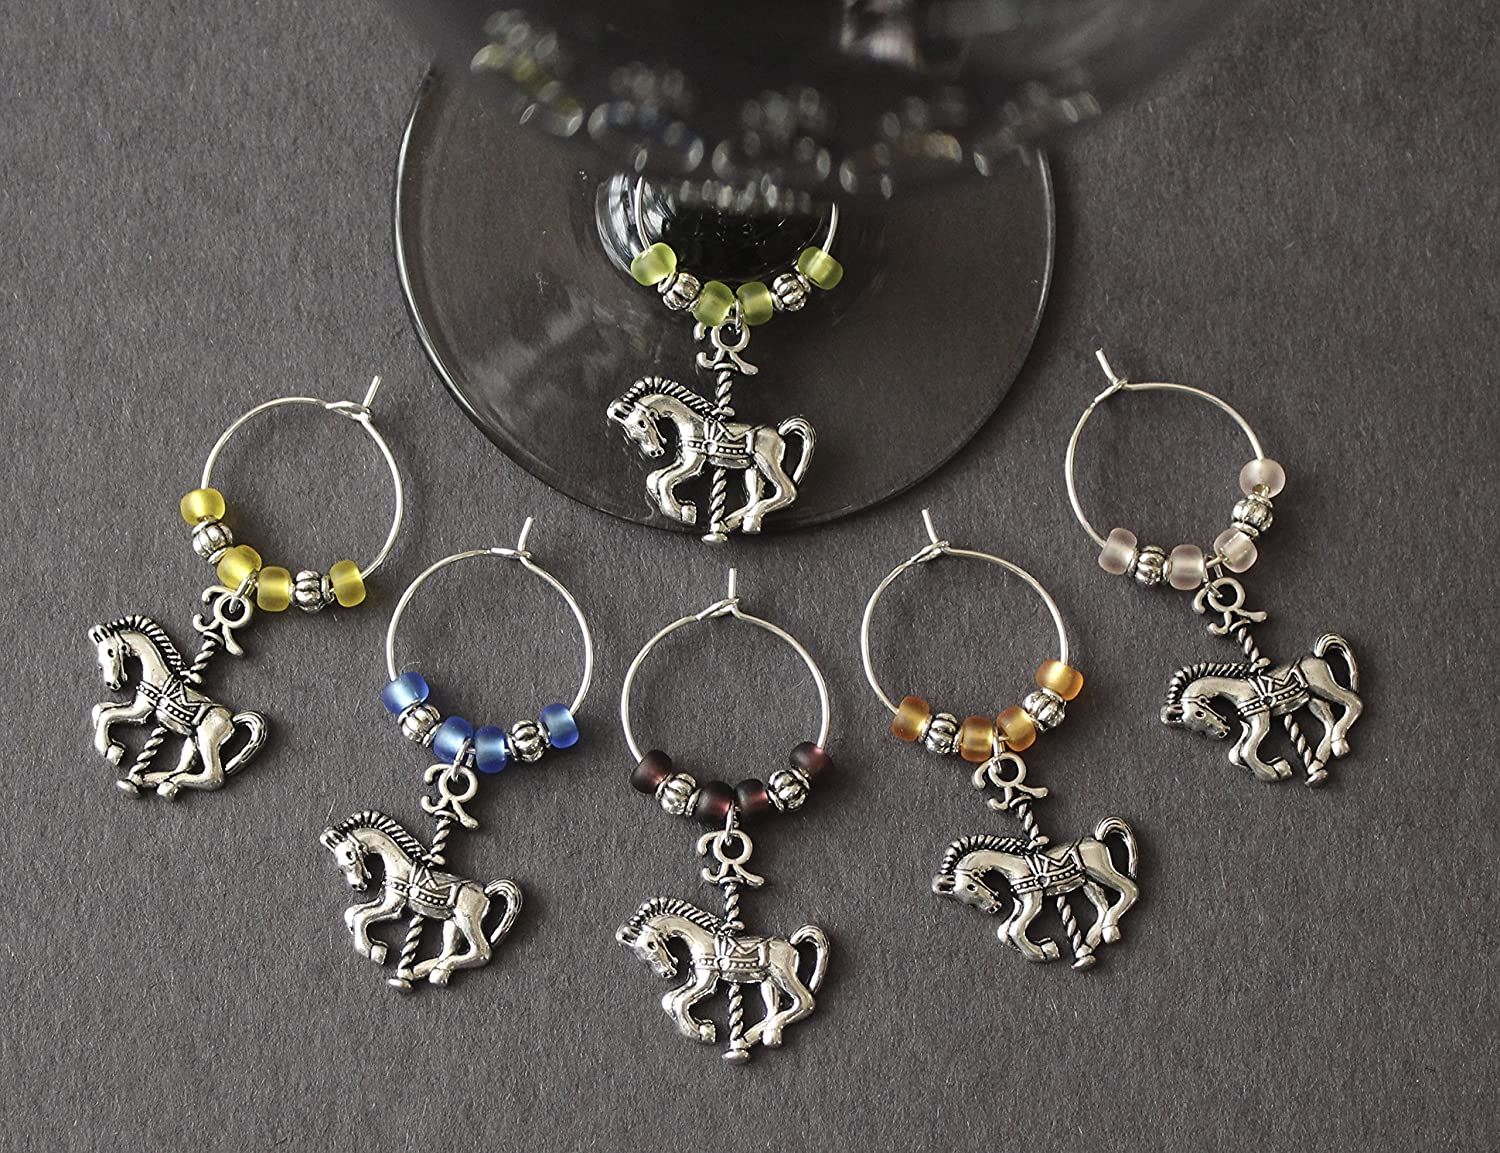 Carousel Horse Wine Glass Charms-Set of 6